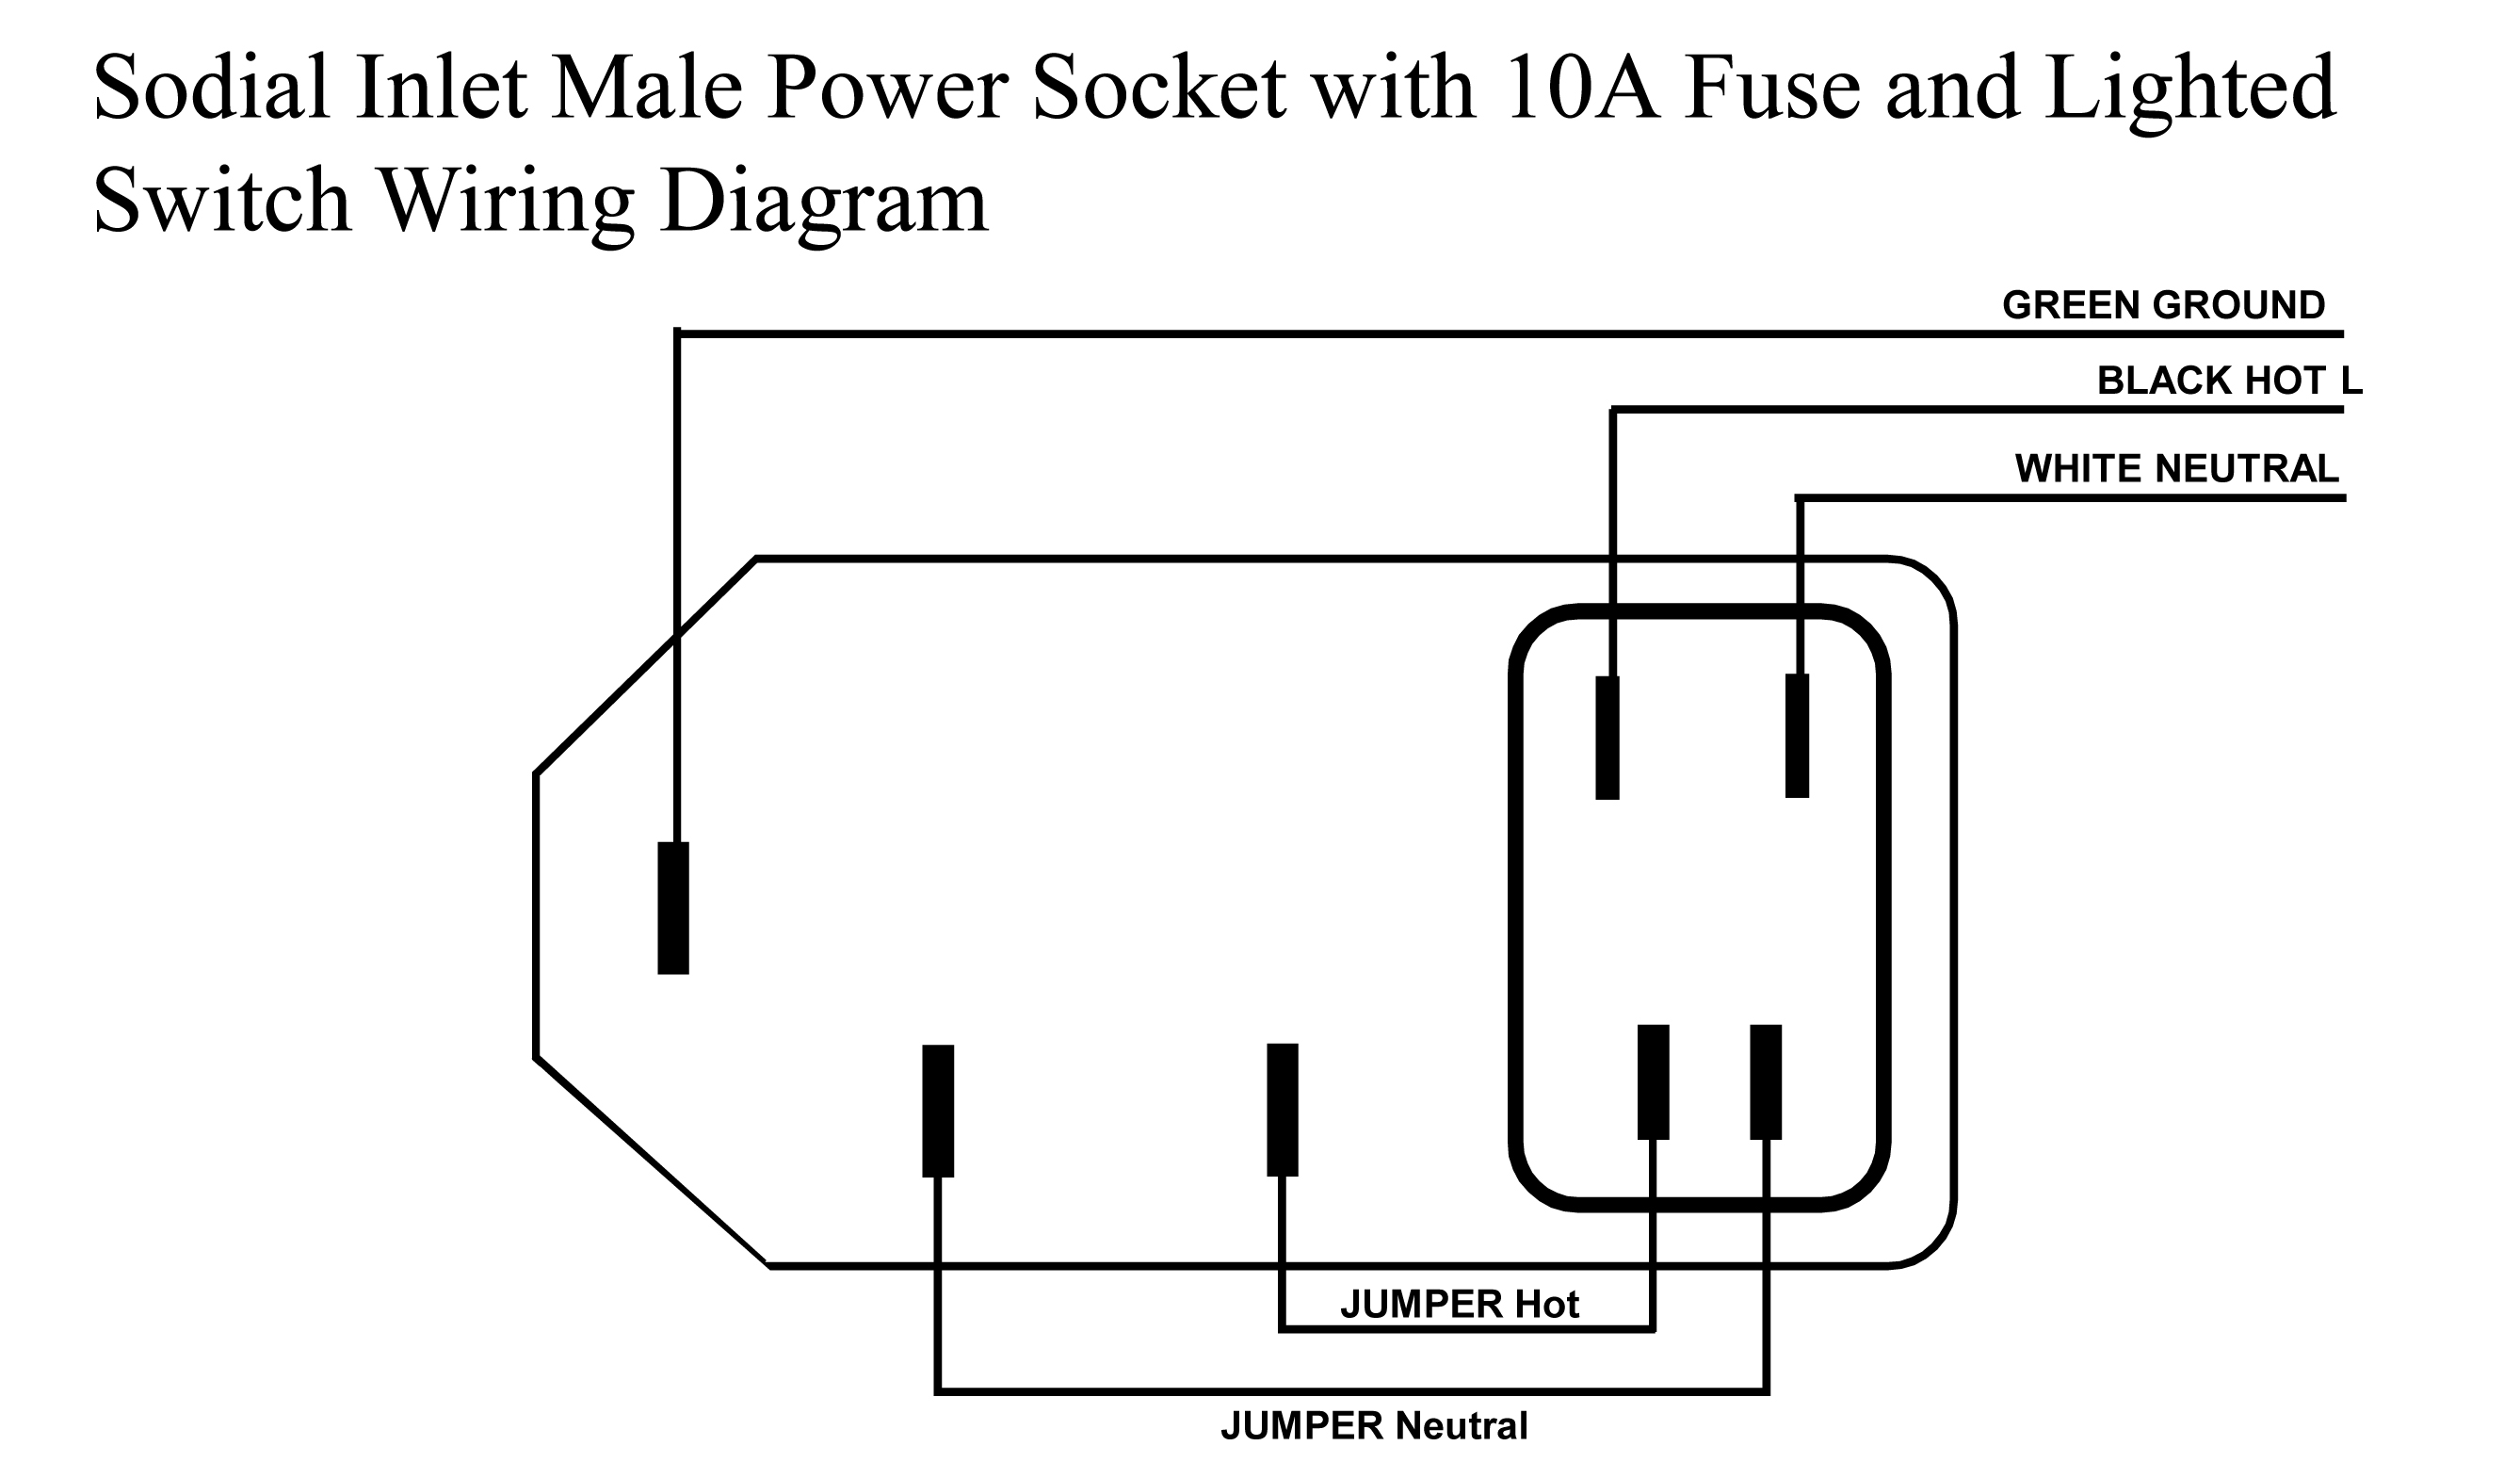 Portapower Ac Lighted Switch Wiring The First Of Two Diagrams Is How To Hook Up Sodial Connector We Will Wire It So When You Flip Provides Power And